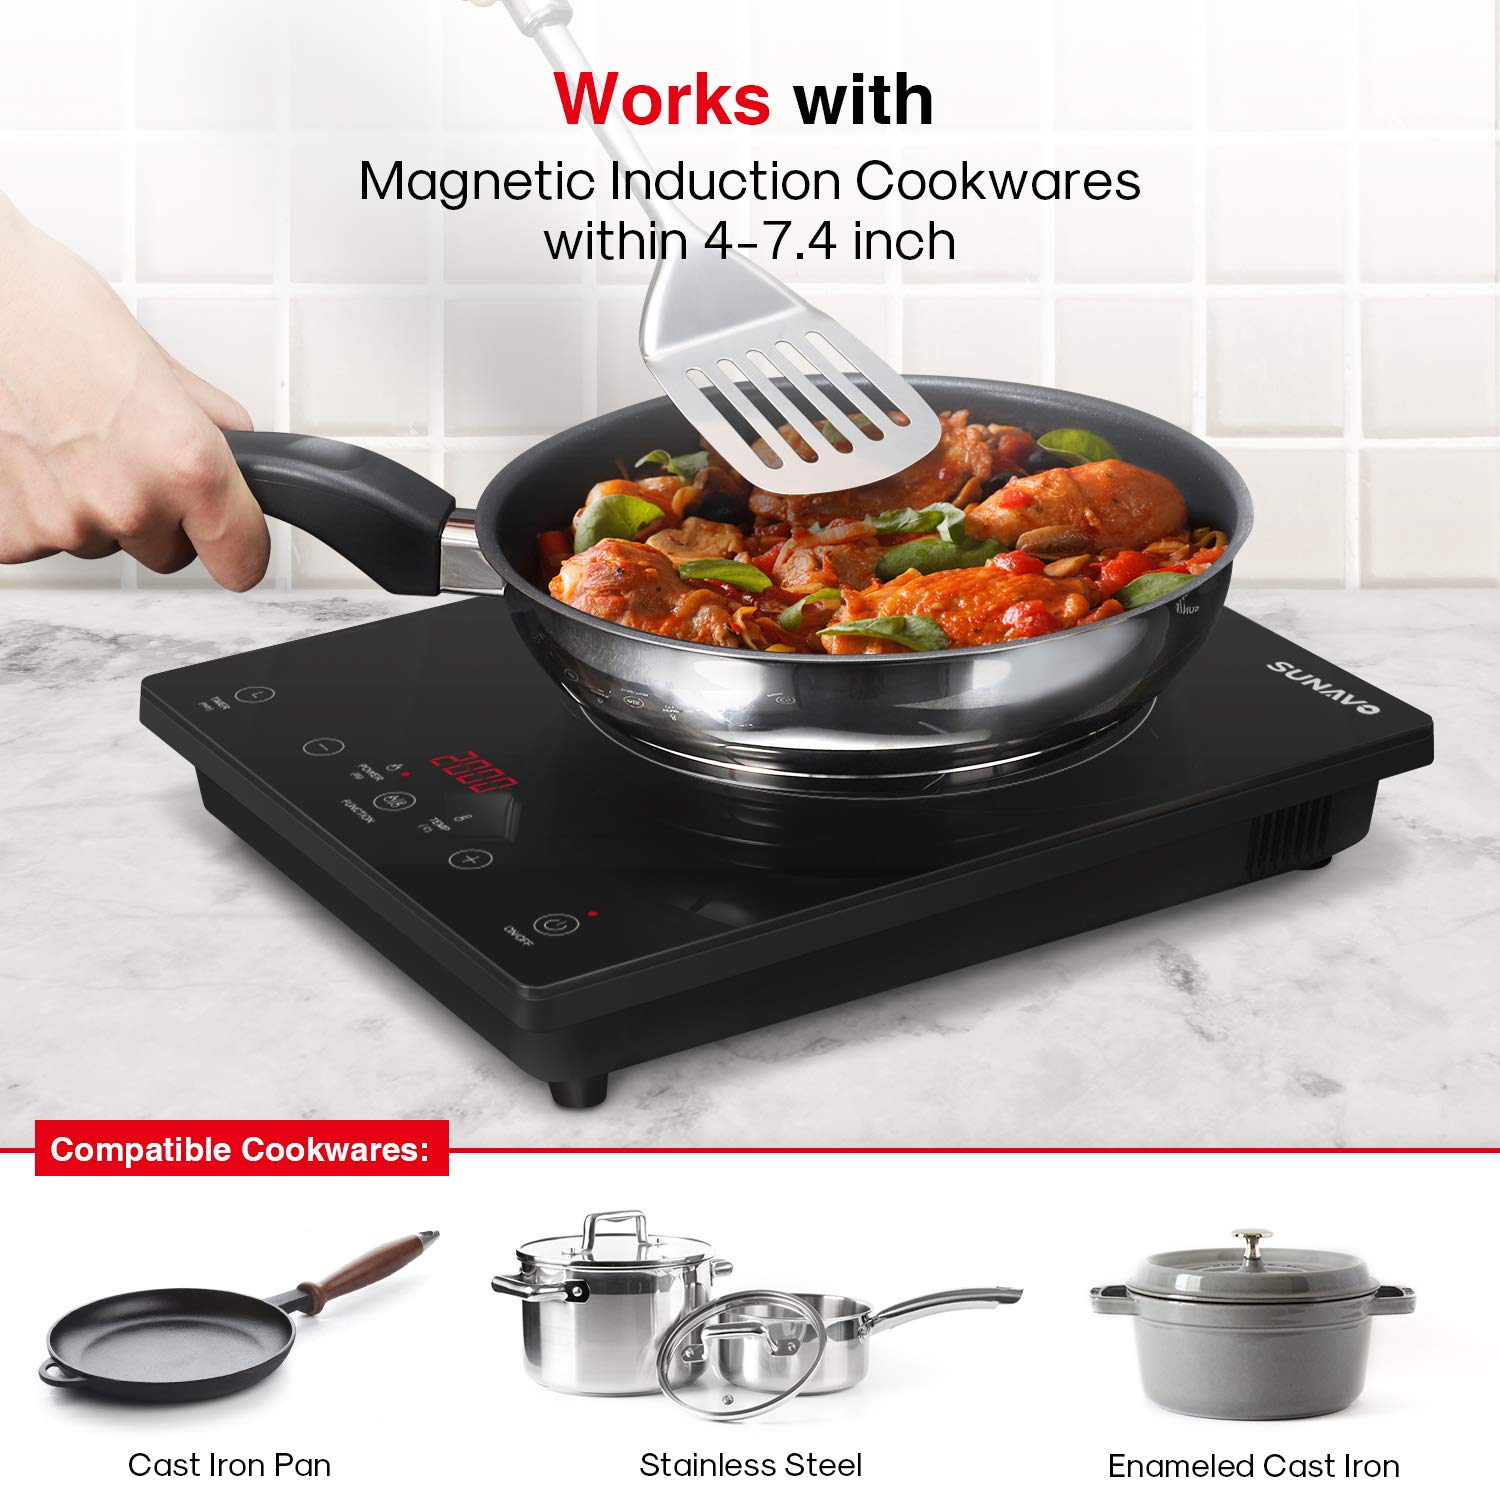 SUNAVO Portable Induction Hob, 2000W Sensor Touch Induction Cooker with Kids Safety Lock, 15-Level Power and Temperature Control Countertop Burner with Timer  Tefal IH201840 Everyday Induction Hob, Black  Induction Hob Portable, JEROOP Ultra-Thin 2000W Single Electric Cooker Cooktop, Touch Controls& LED Display Panel, 10 Power and Temperature Settings, 3-Hour Timer, Safety Child Lock  Aobosi induction Hob,Portable Induction Cooker 2000W Black Crystal Glass Surface with LCD Sensor Touch Induction Cooktop With 10 Power Levels and 10 Temperatures Variation 3-hour Timer Function